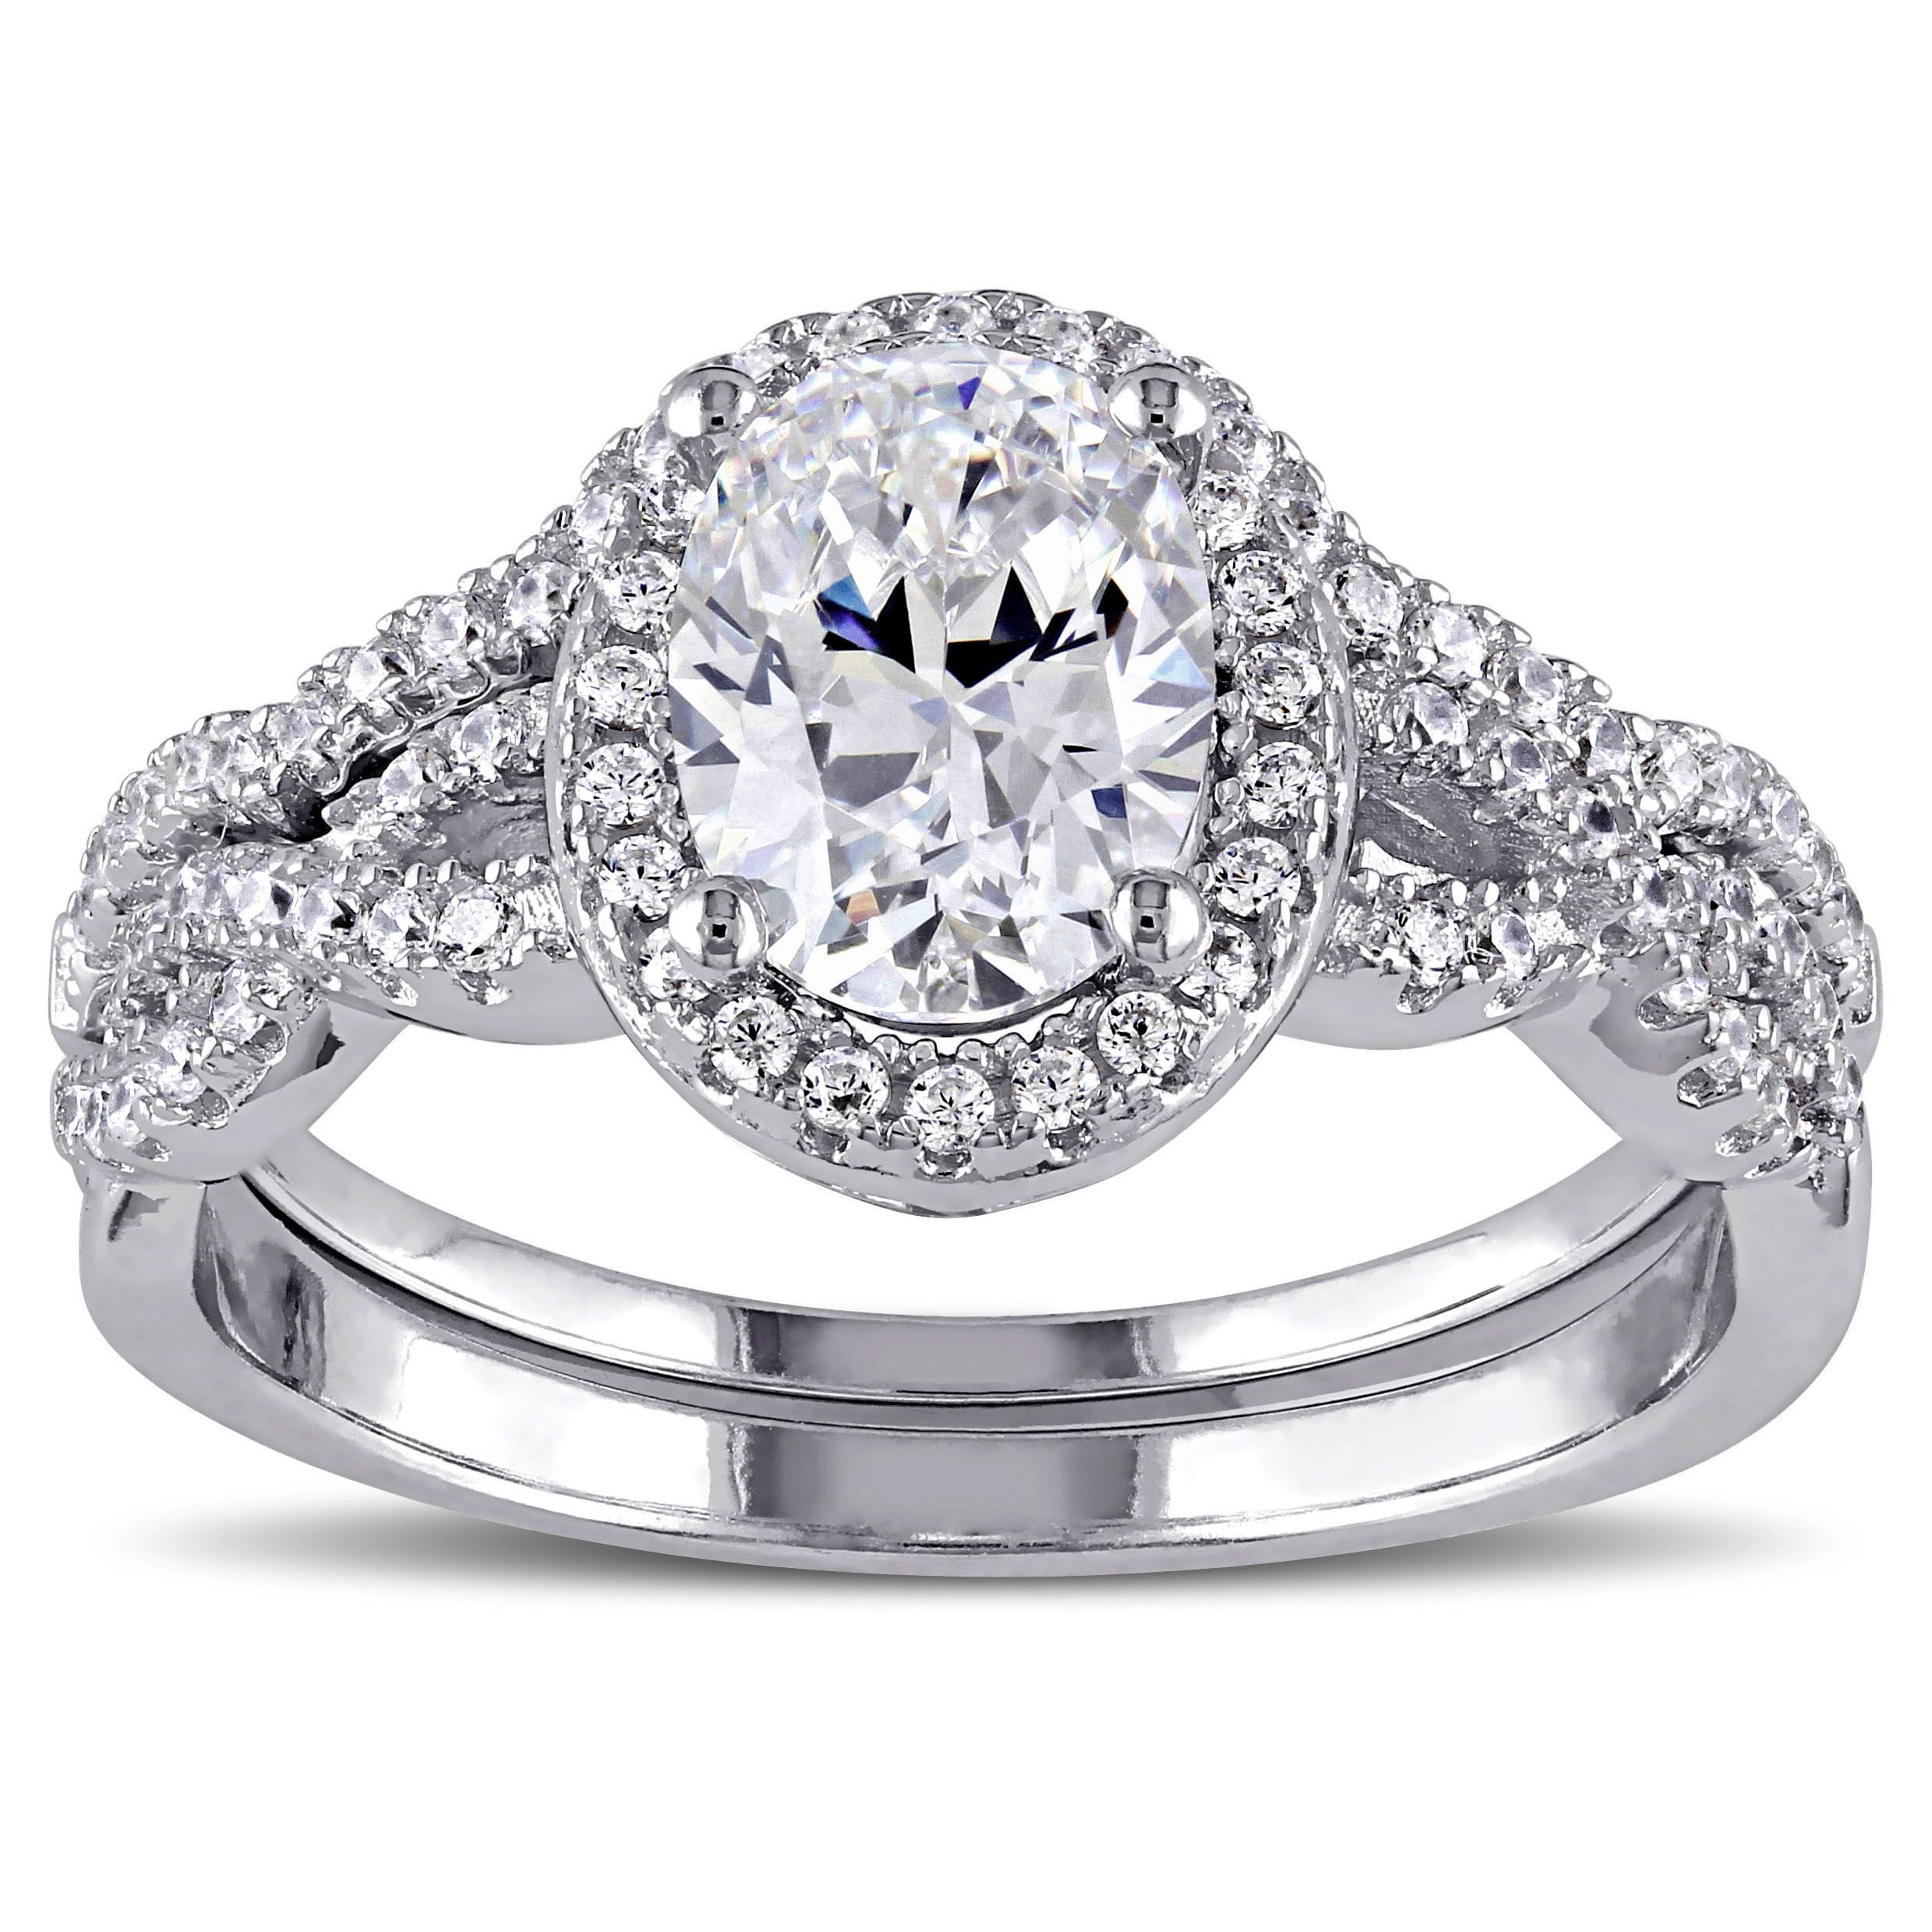 Miadora Sterling Silver Oval and Round-cut Cubic Zirconia Halo Bridal Ring set (More options available)